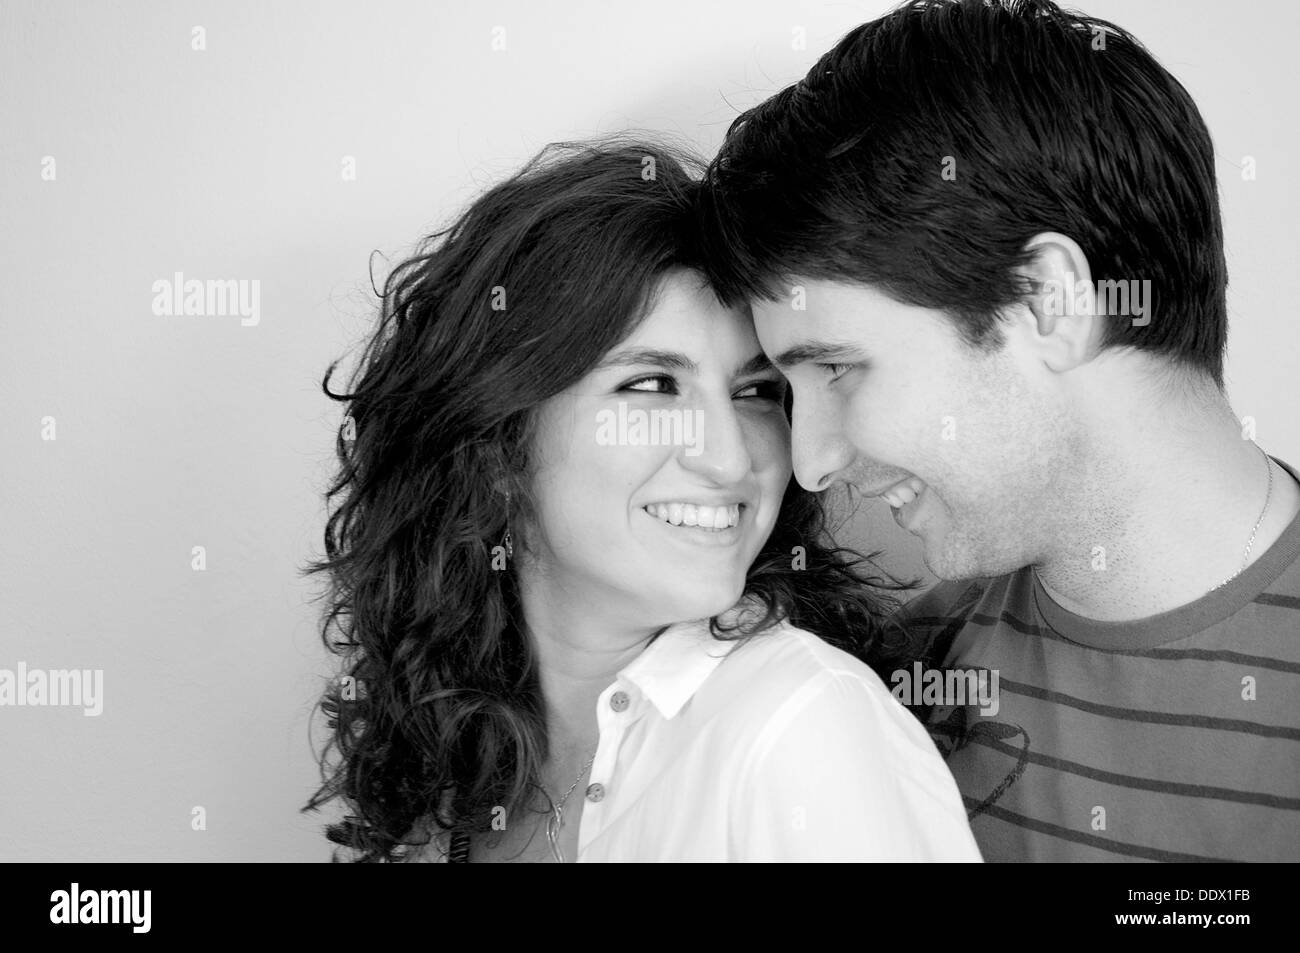 Happy young couple smiling and looking at each other. Close view. Black and white. - Stock Image